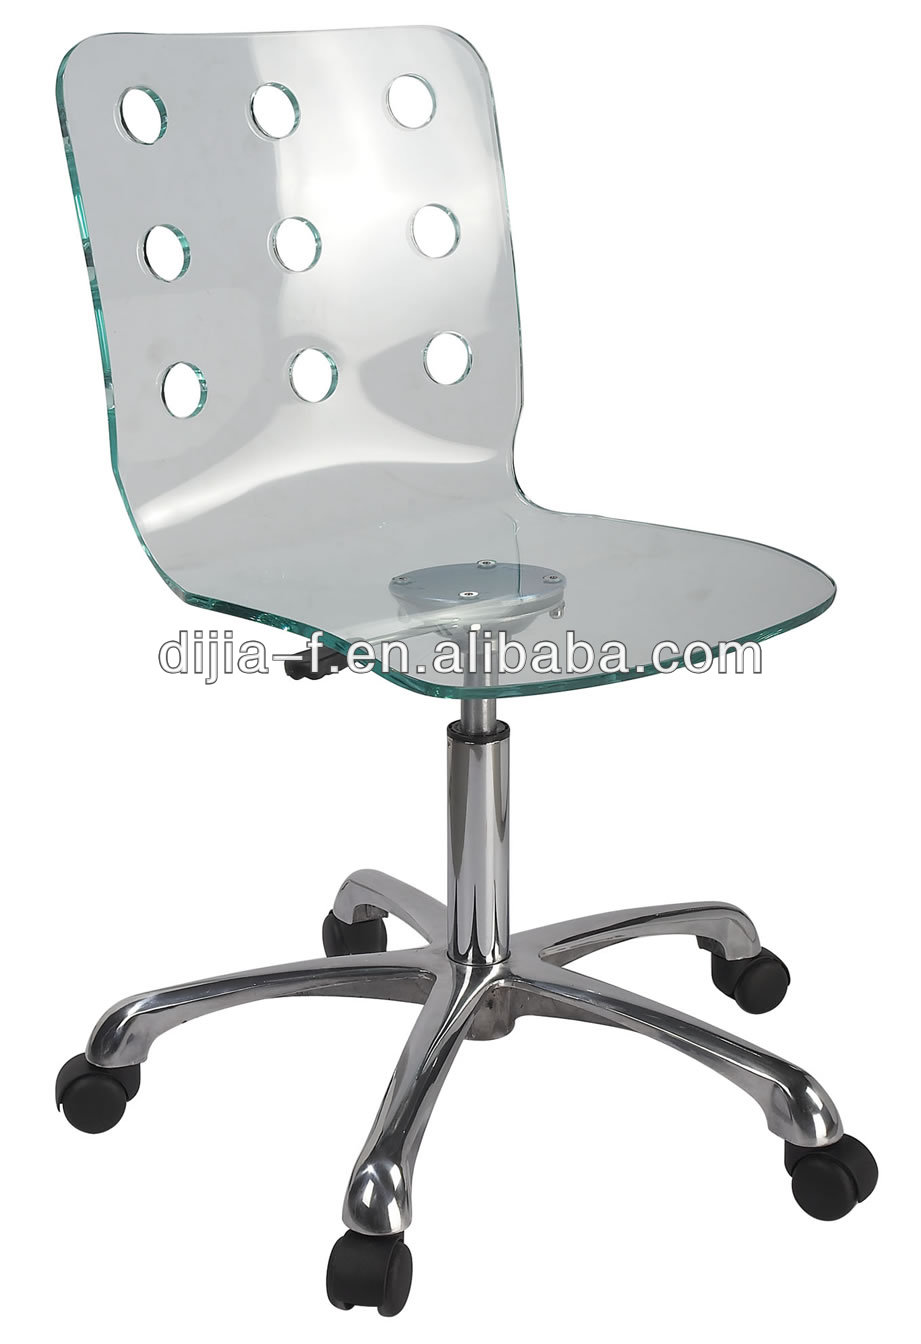 clear acrylic swivel chair clear acrylic swivel chair suppliers and at alibabacom